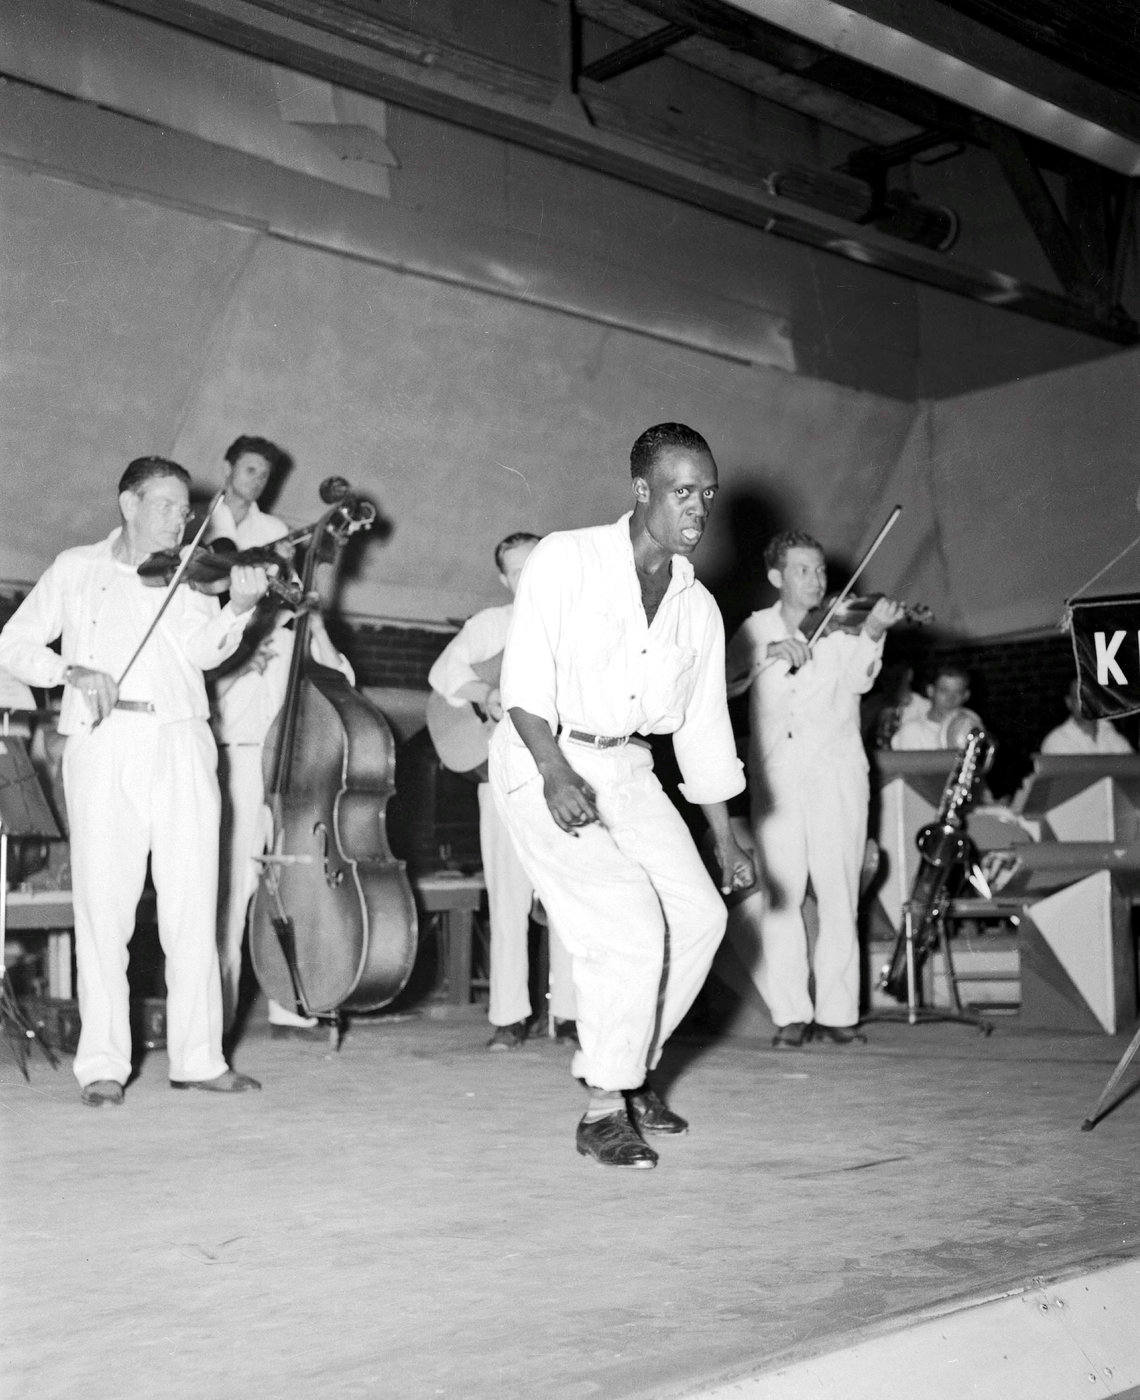 With the band urging him on, an inmate dances on KPRC's Thirty Minutes, circa 1950.